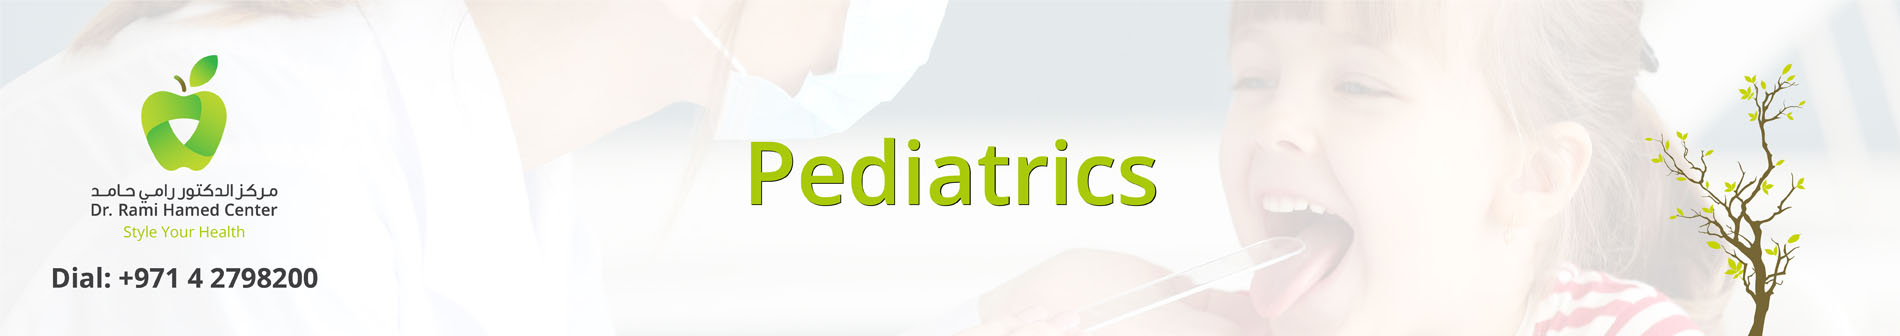 Dubai Pediatric Clinic